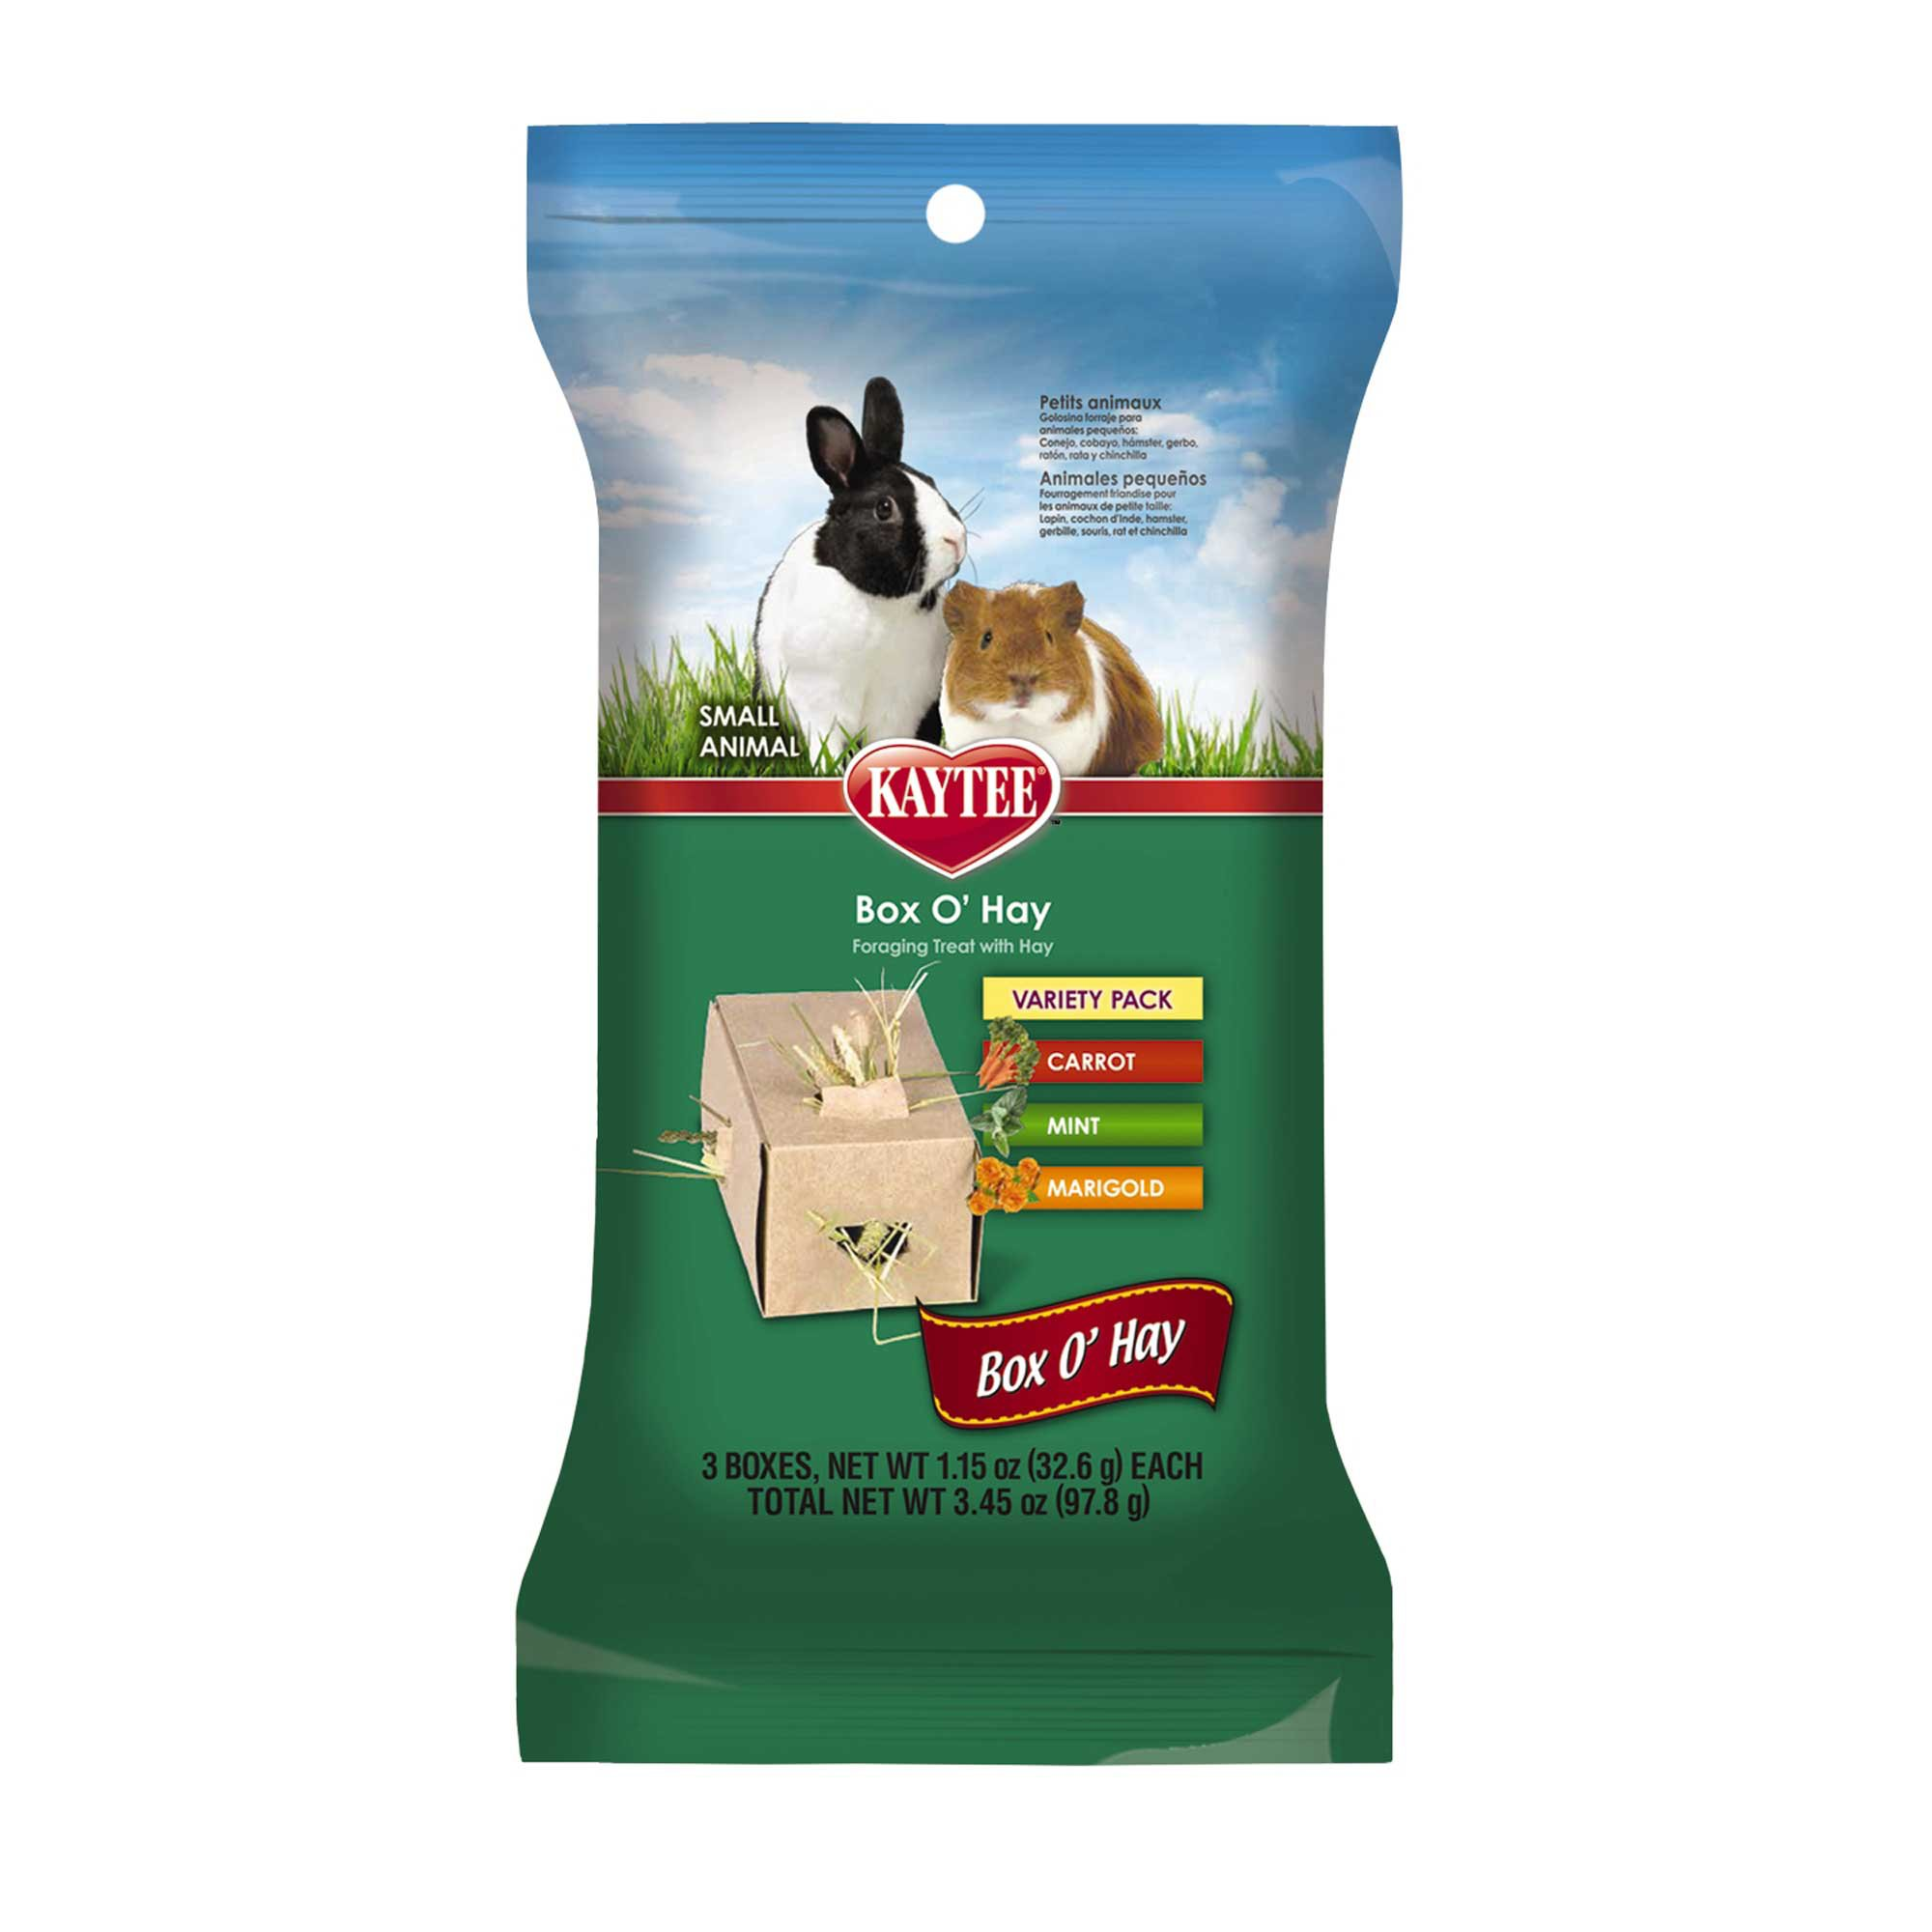 Kaytee Timothy Hay Plus Treat Boxes For Small Animals, Carrot, Mint and Marigold   Petco at Petco in Braselton, GA   Tuggl